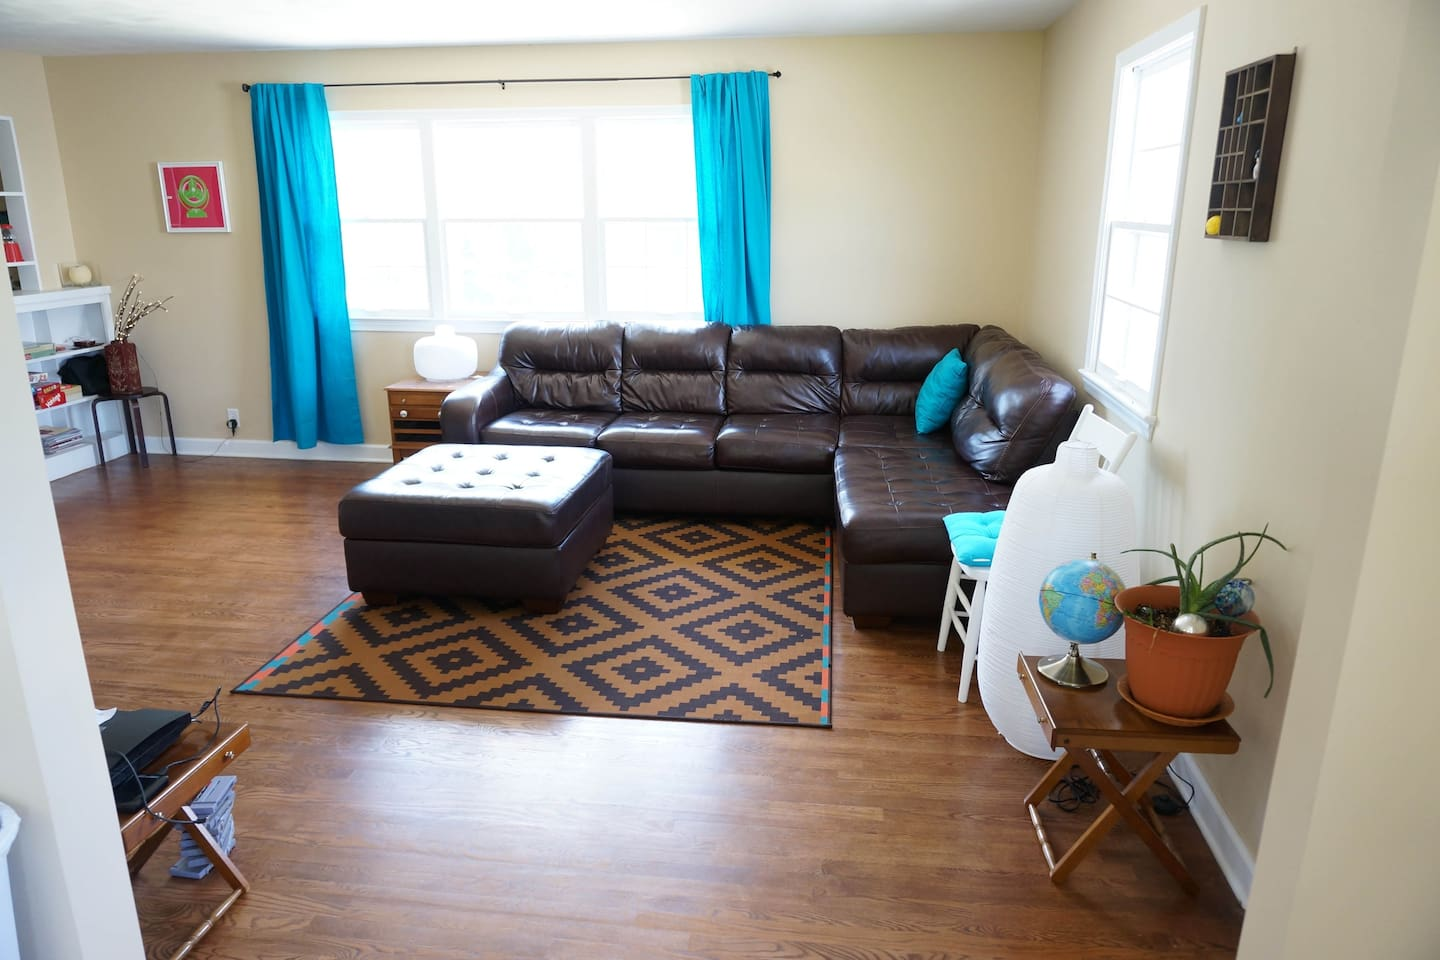 Welcome to our home! This is our common living space that you will see right when you walk in!